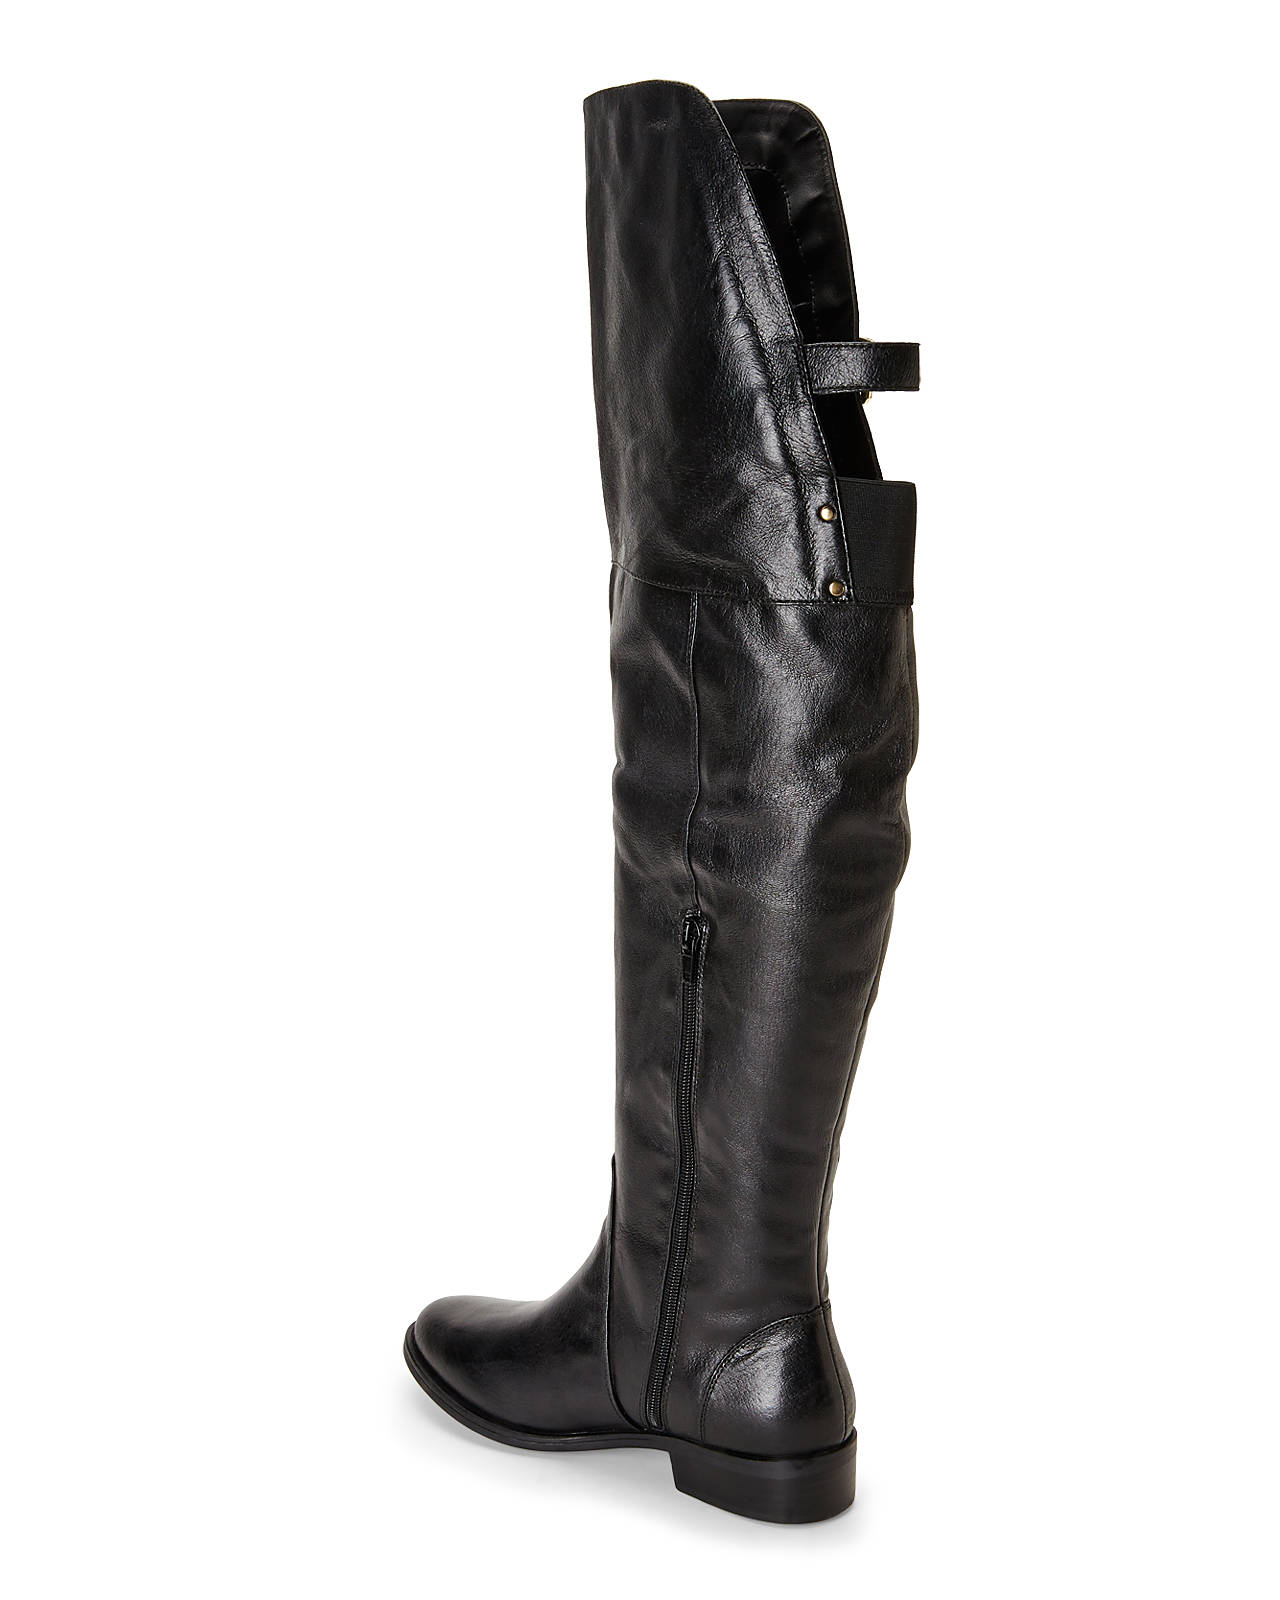 Steve madden Black Over-the-knee Riding Boots in Black | Lyst